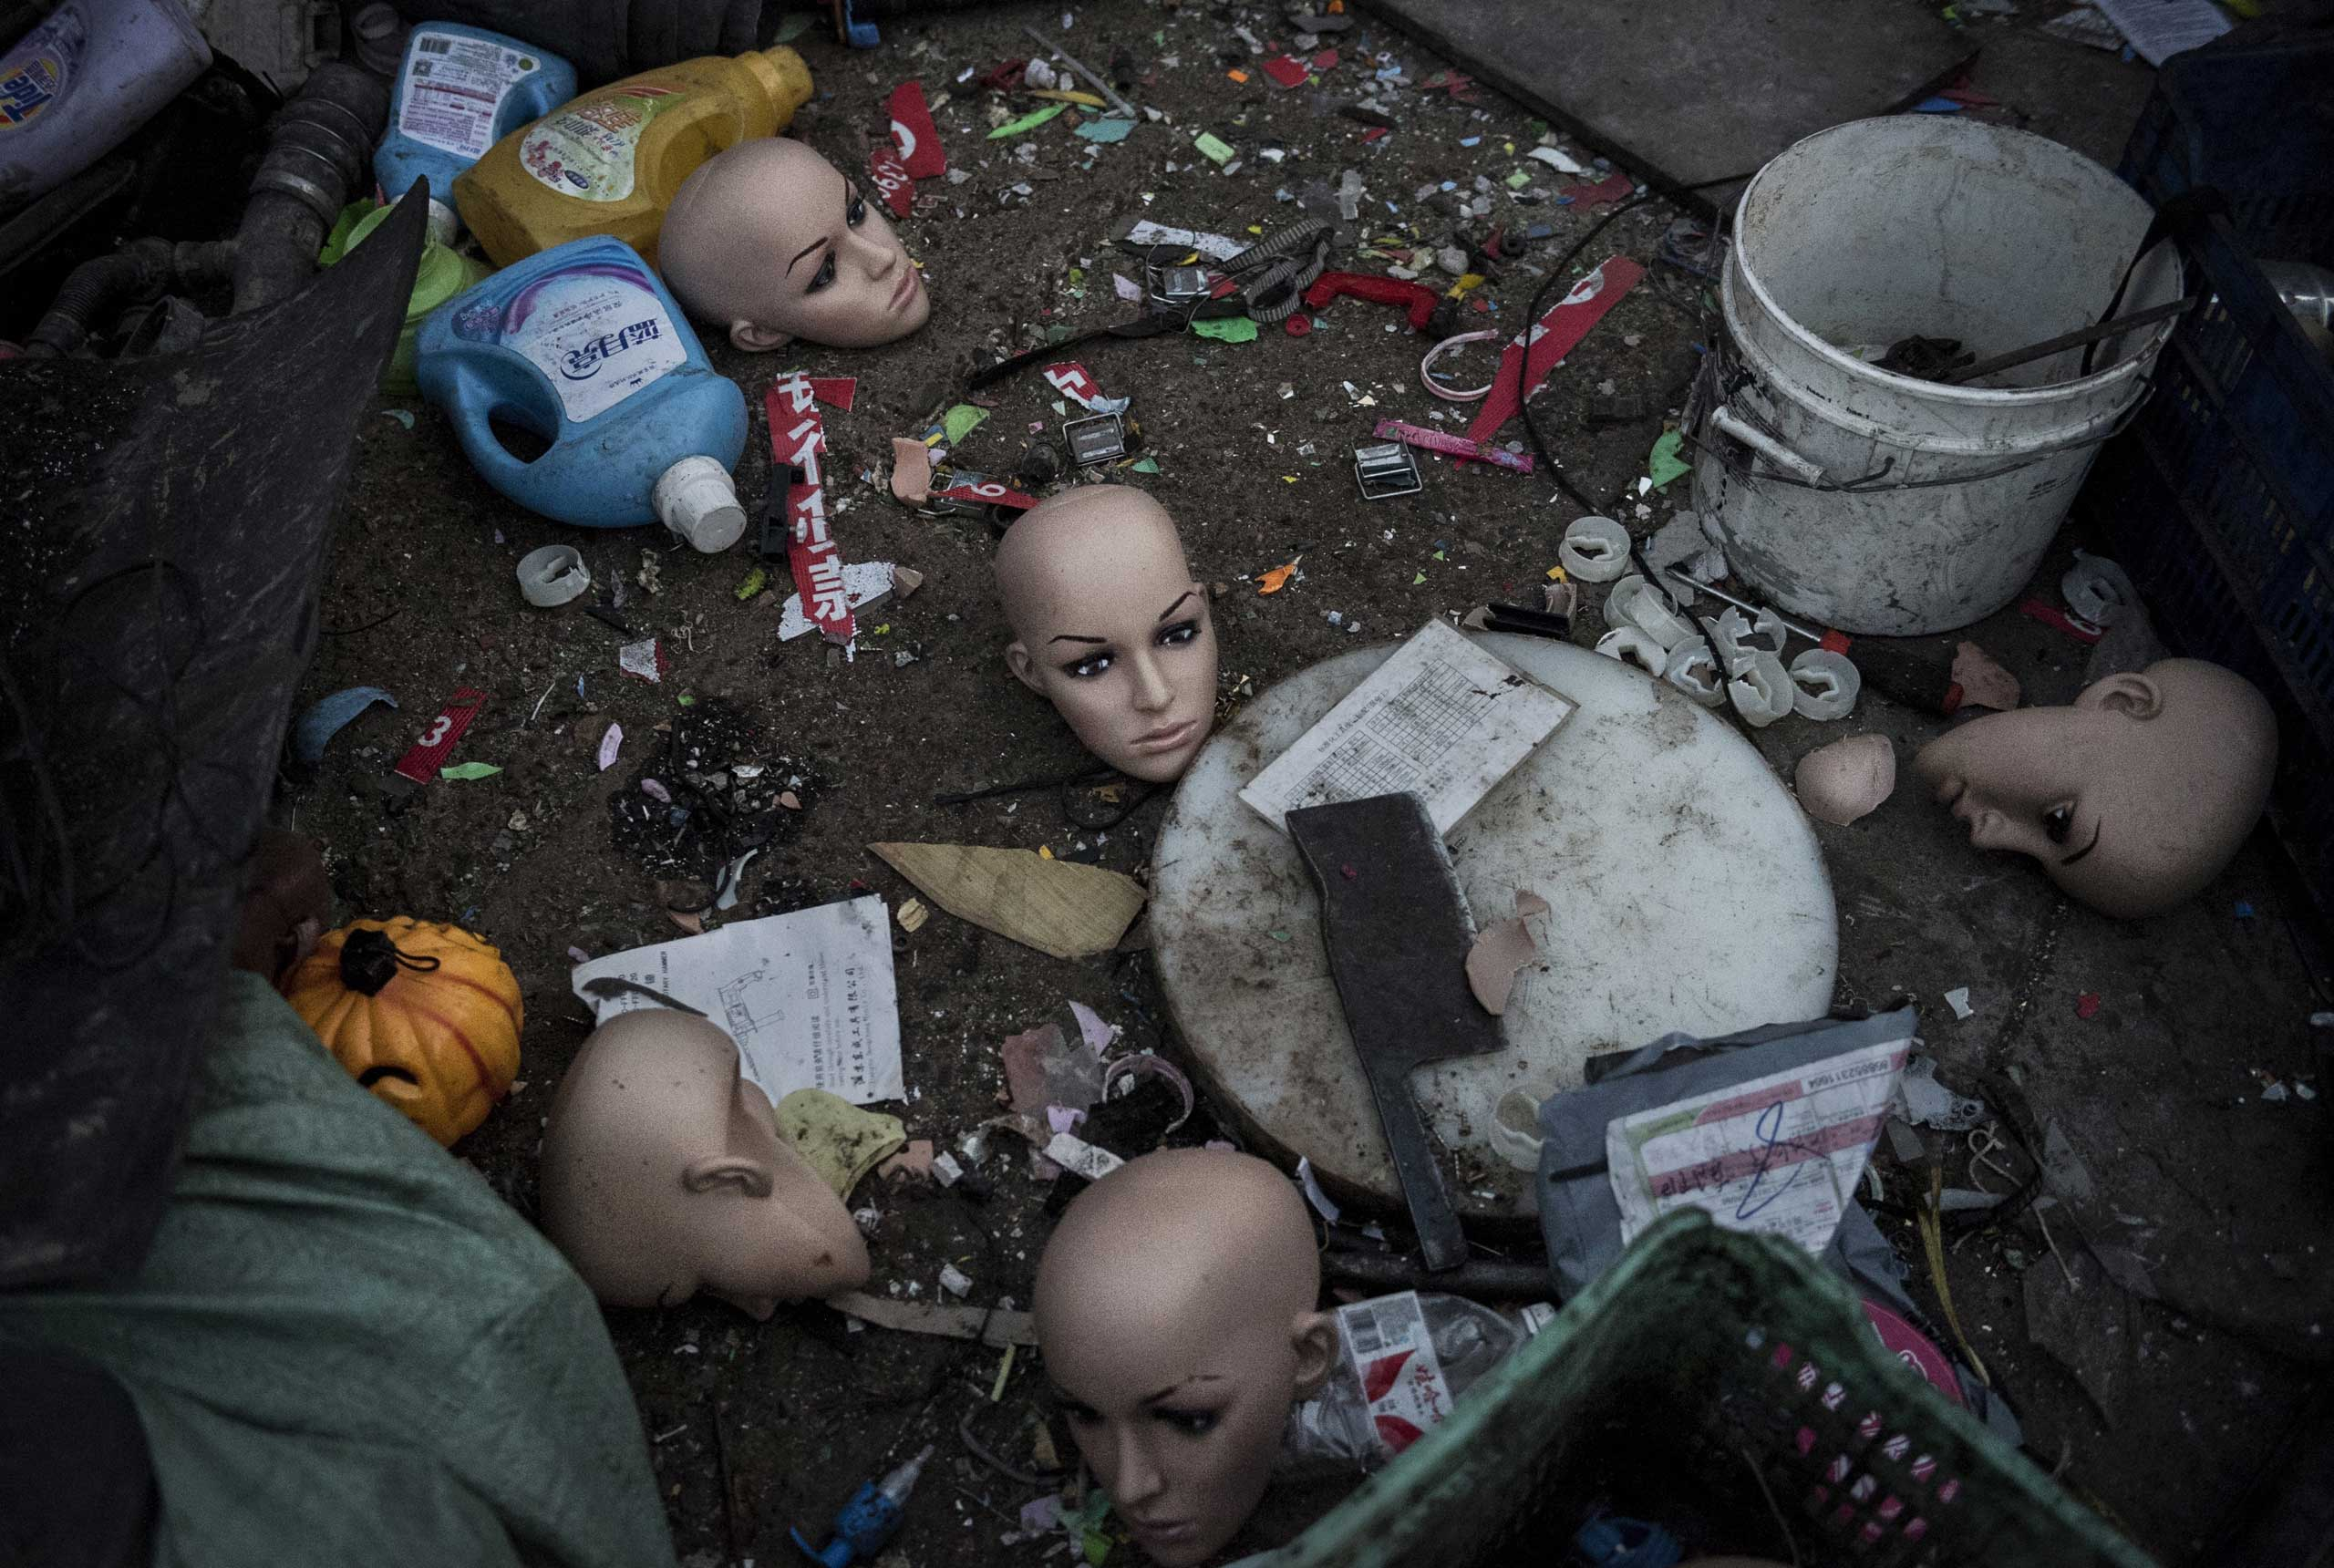 Plastic mannequin heads and other items lay on the ground before being recycled in the Dong Xiao Kou village on Dec. 15, 2014 in Beijing.